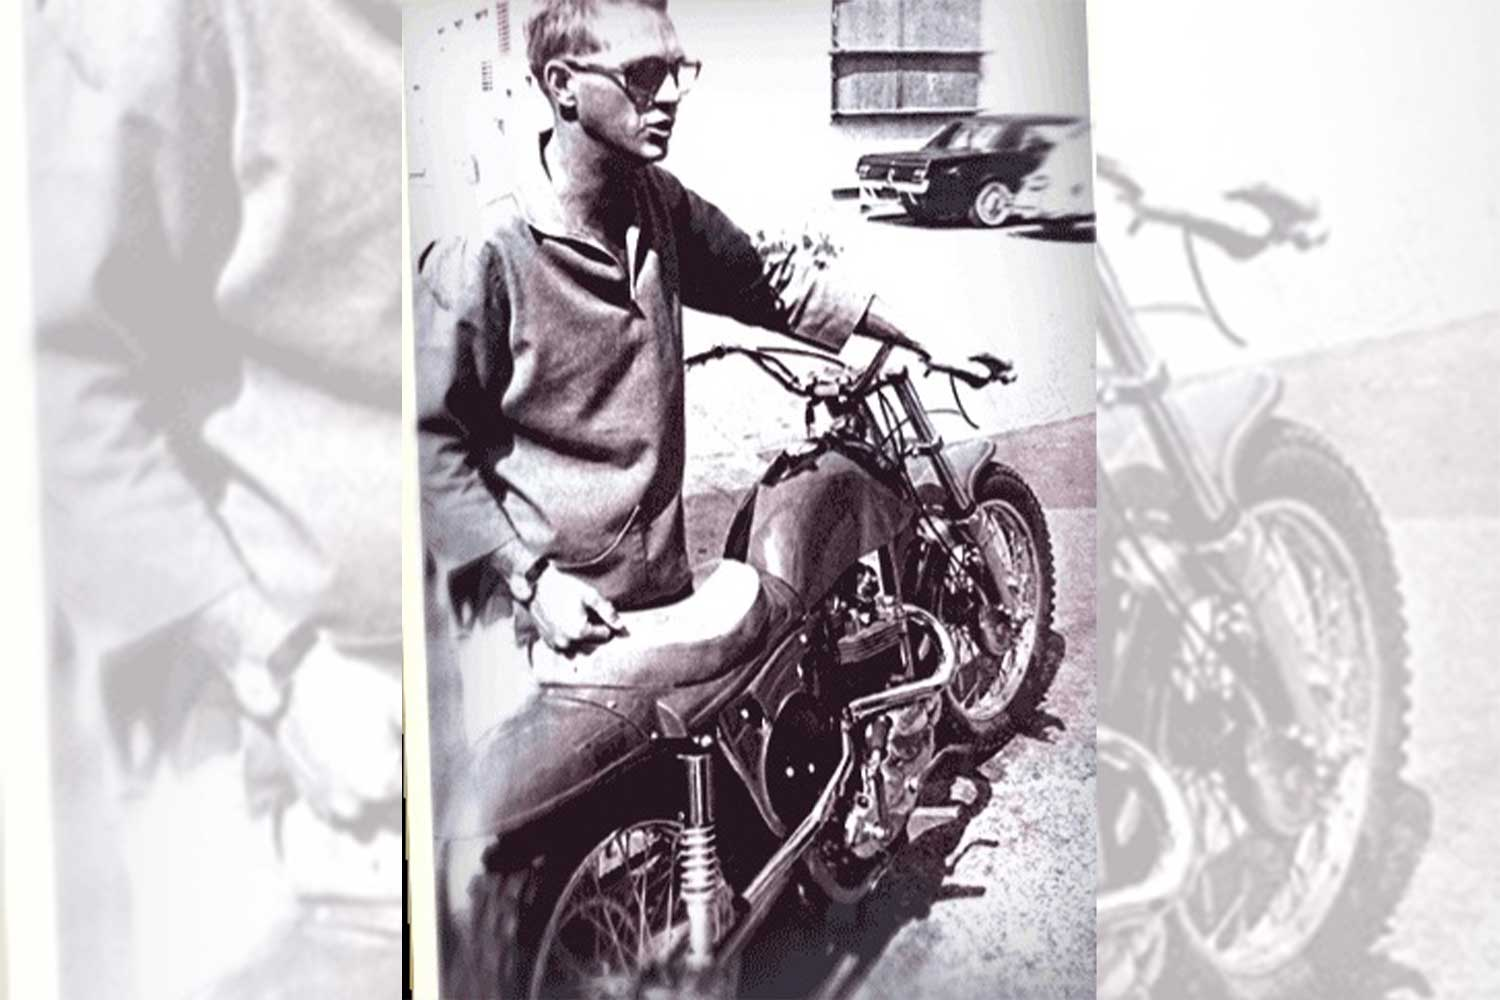 Steve McQueen commented in 1966 that the Metisse Mk3 he owned:' This rig is the best handling bike I've ever owned!'